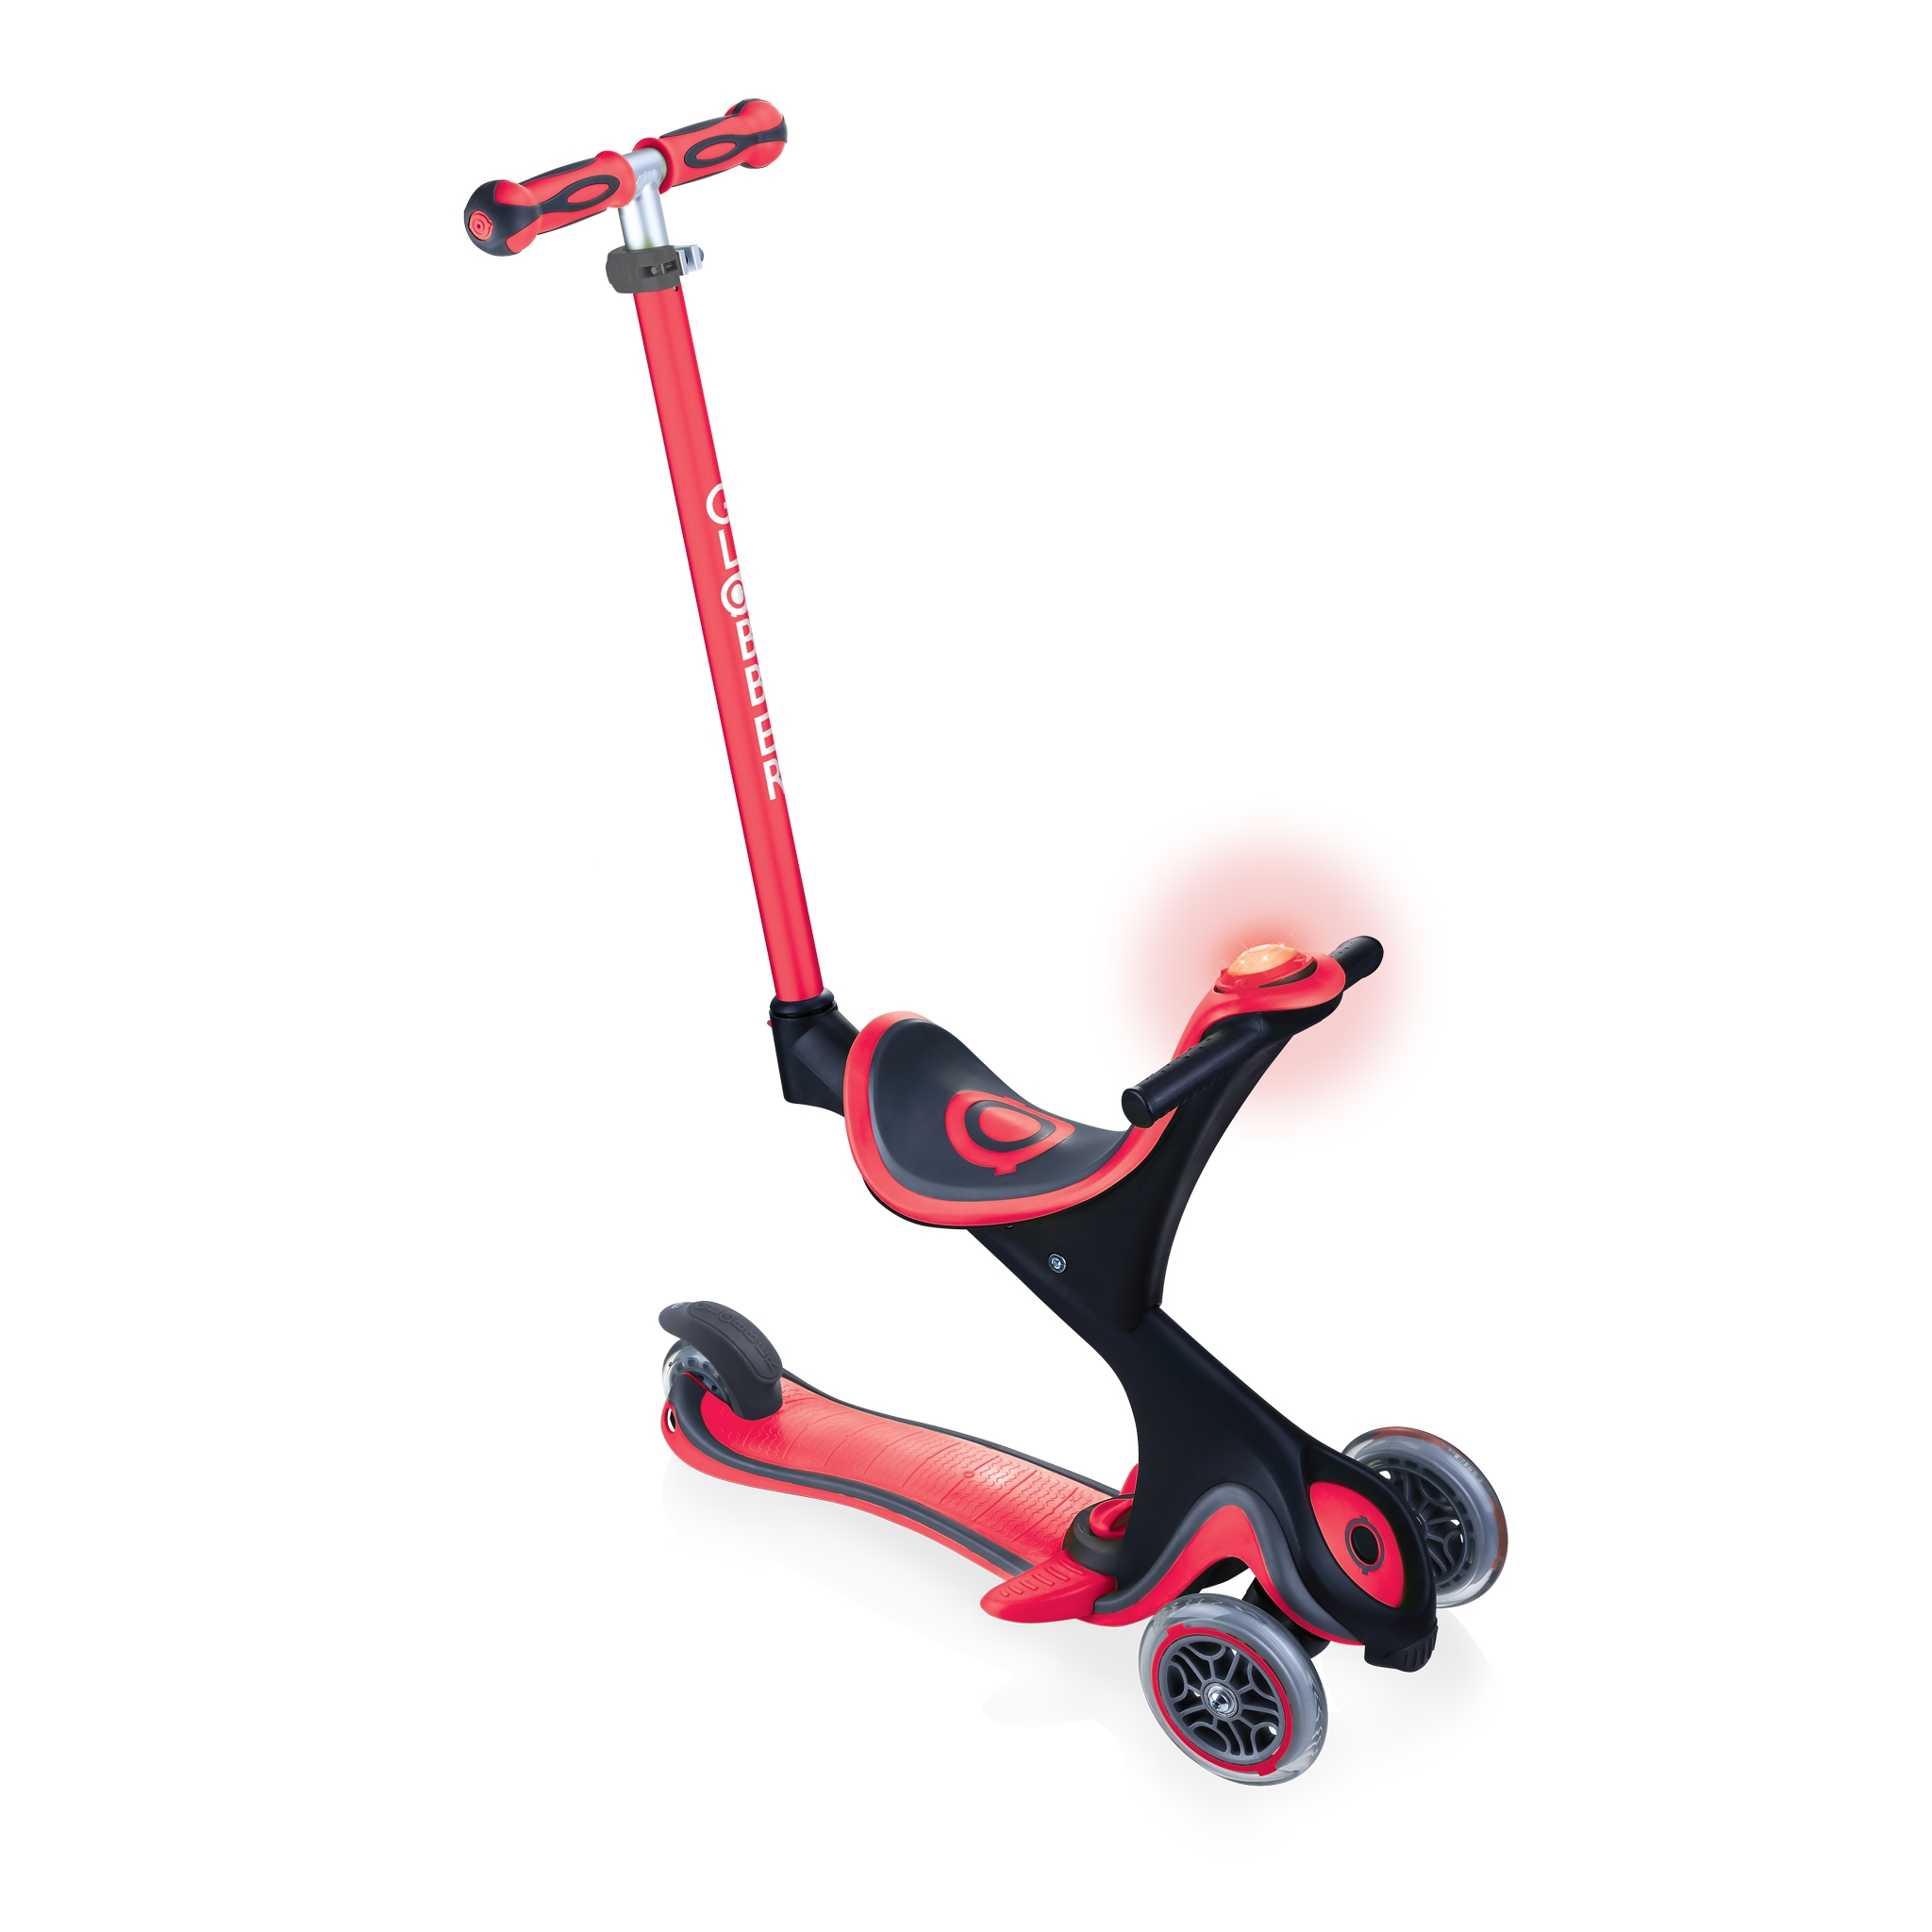 GO-UP-COMFORT-scooter-with-seat-and-LED-flash-and-sound-module_new-red